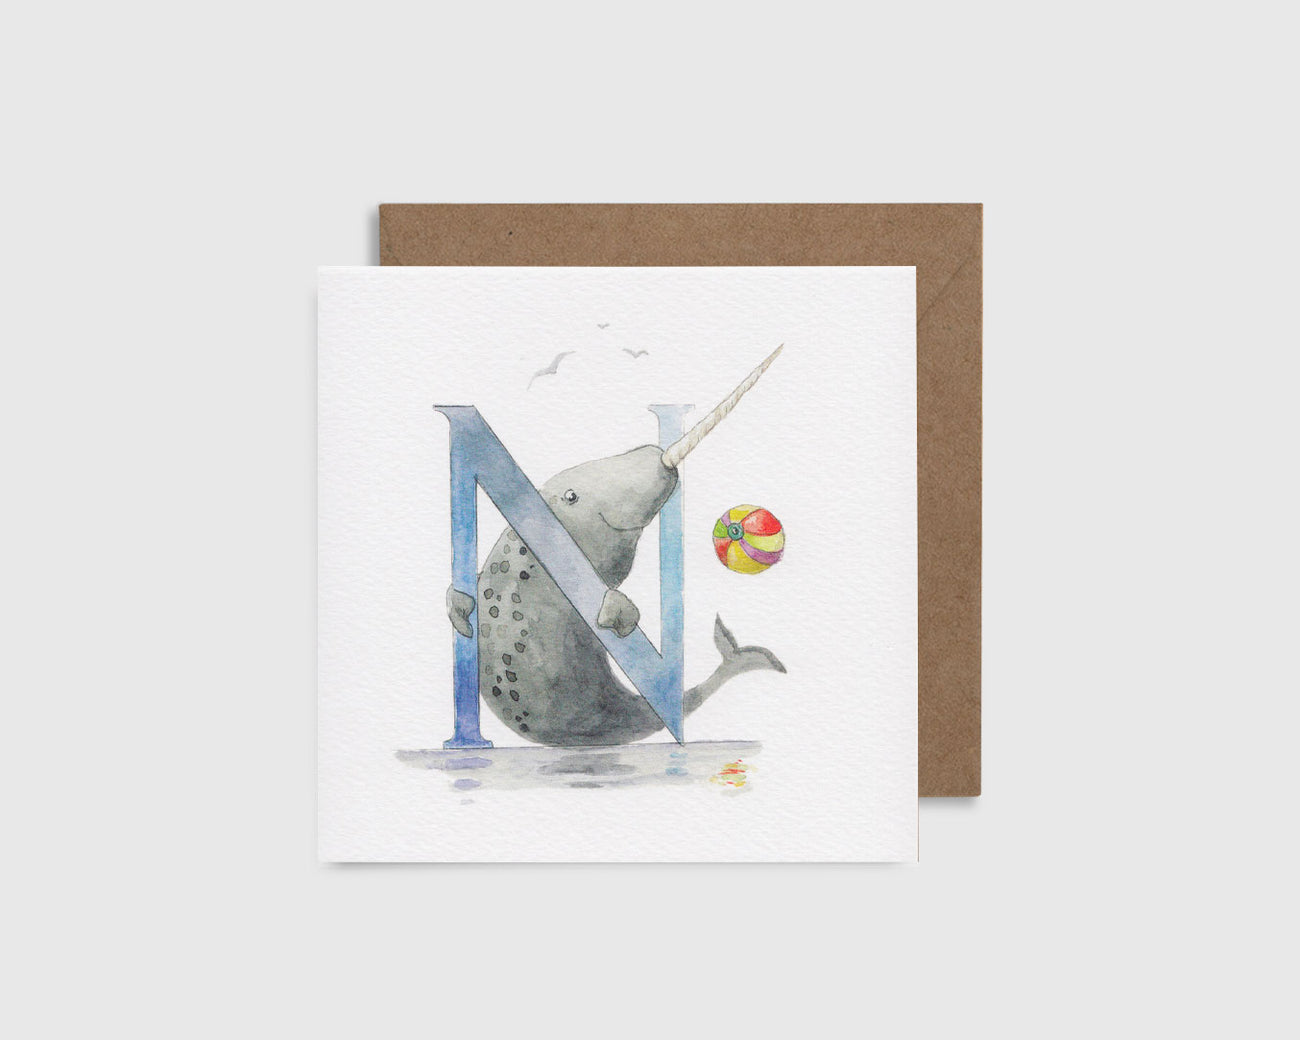 N is for Narwhal - N comme Narval